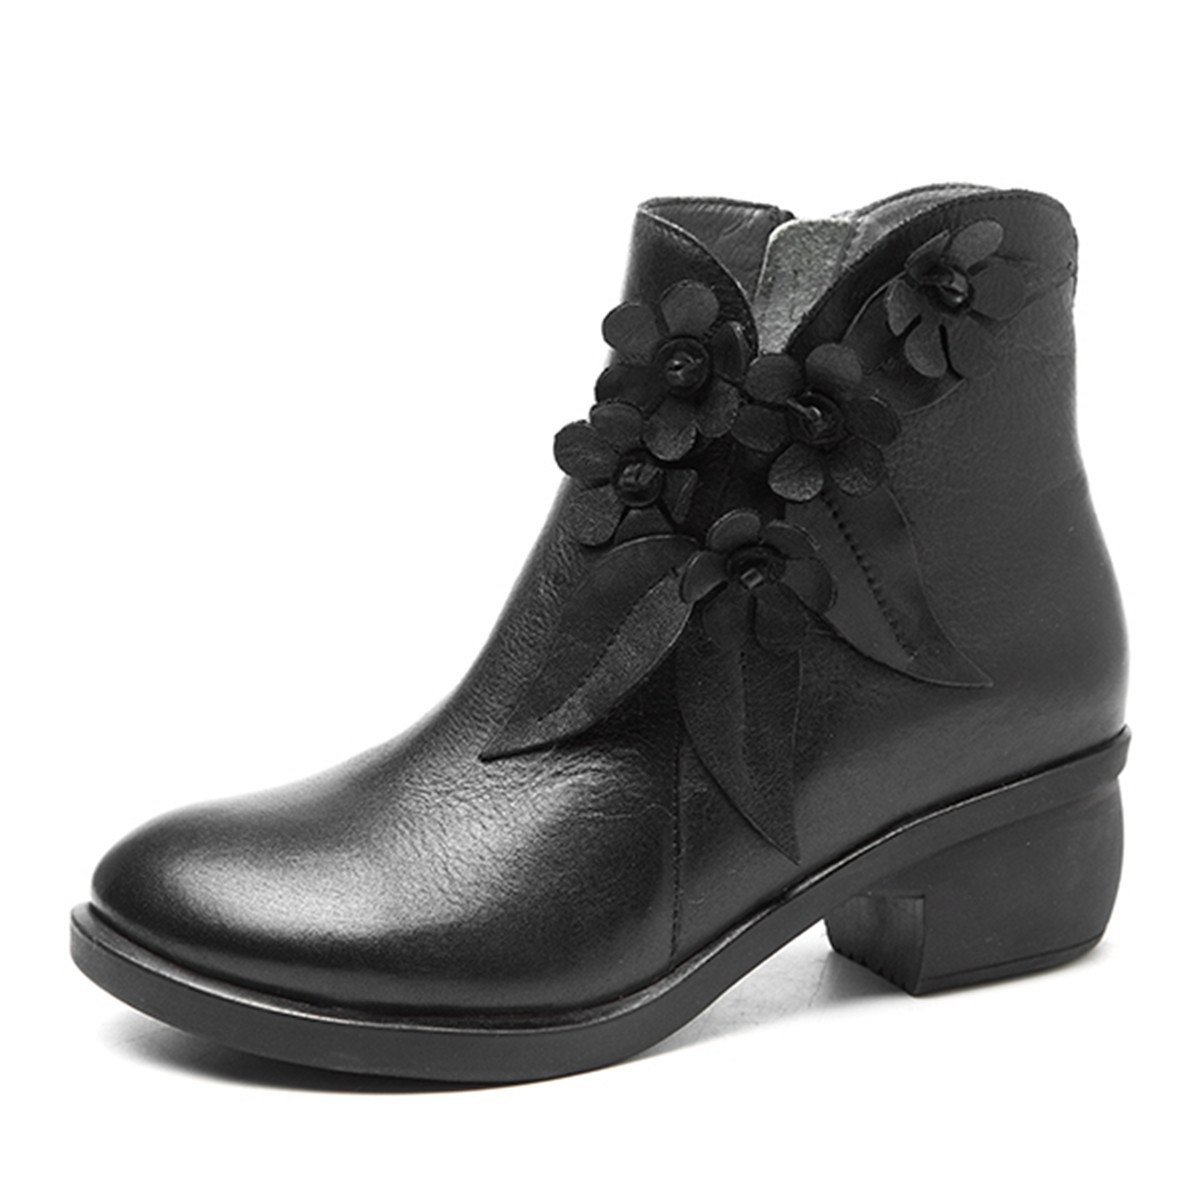 Socofy Leather Ankle Bootie, Women's Vintage Handmade Fashion Leather Boot Rose Floral Shoes Oxford Boots B077FXQV6K 9 M US|Black Style 2